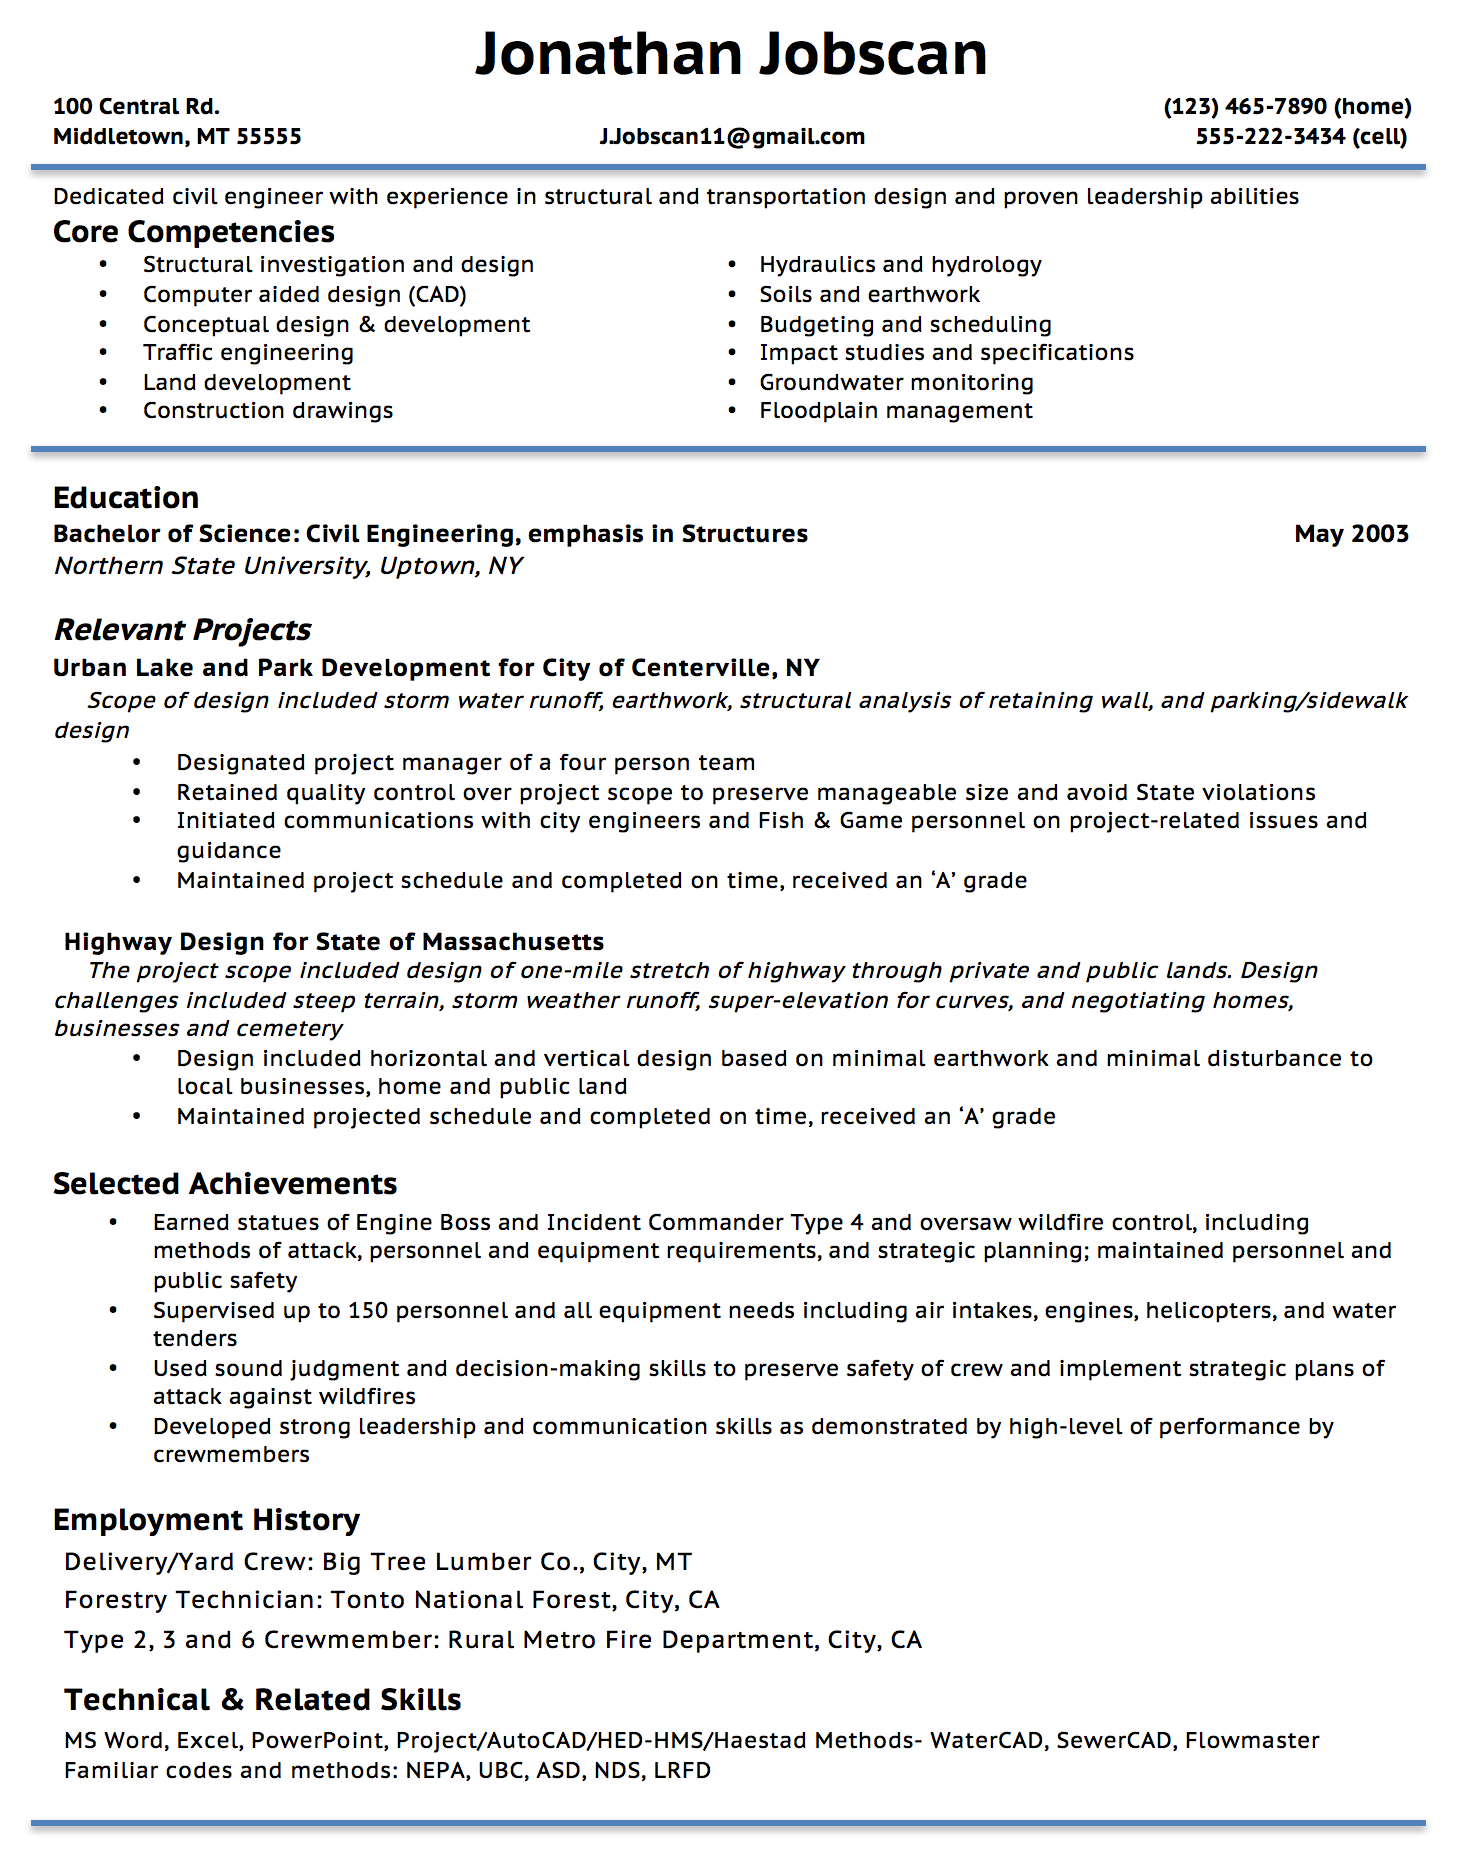 Opposenewapstandardsus  Stunning Resume Writing Guide  Jobscan With Fascinating Example Of A Functional Resume Format With Nice Resume Maker Free Download Also How To Make A Resume For Work In Addition Best Words For Resume And Sample Nursing Resumes As Well As Waitress Resume Sample Additionally It Technician Resume From Jobscanco With Opposenewapstandardsus  Fascinating Resume Writing Guide  Jobscan With Nice Example Of A Functional Resume Format And Stunning Resume Maker Free Download Also How To Make A Resume For Work In Addition Best Words For Resume From Jobscanco